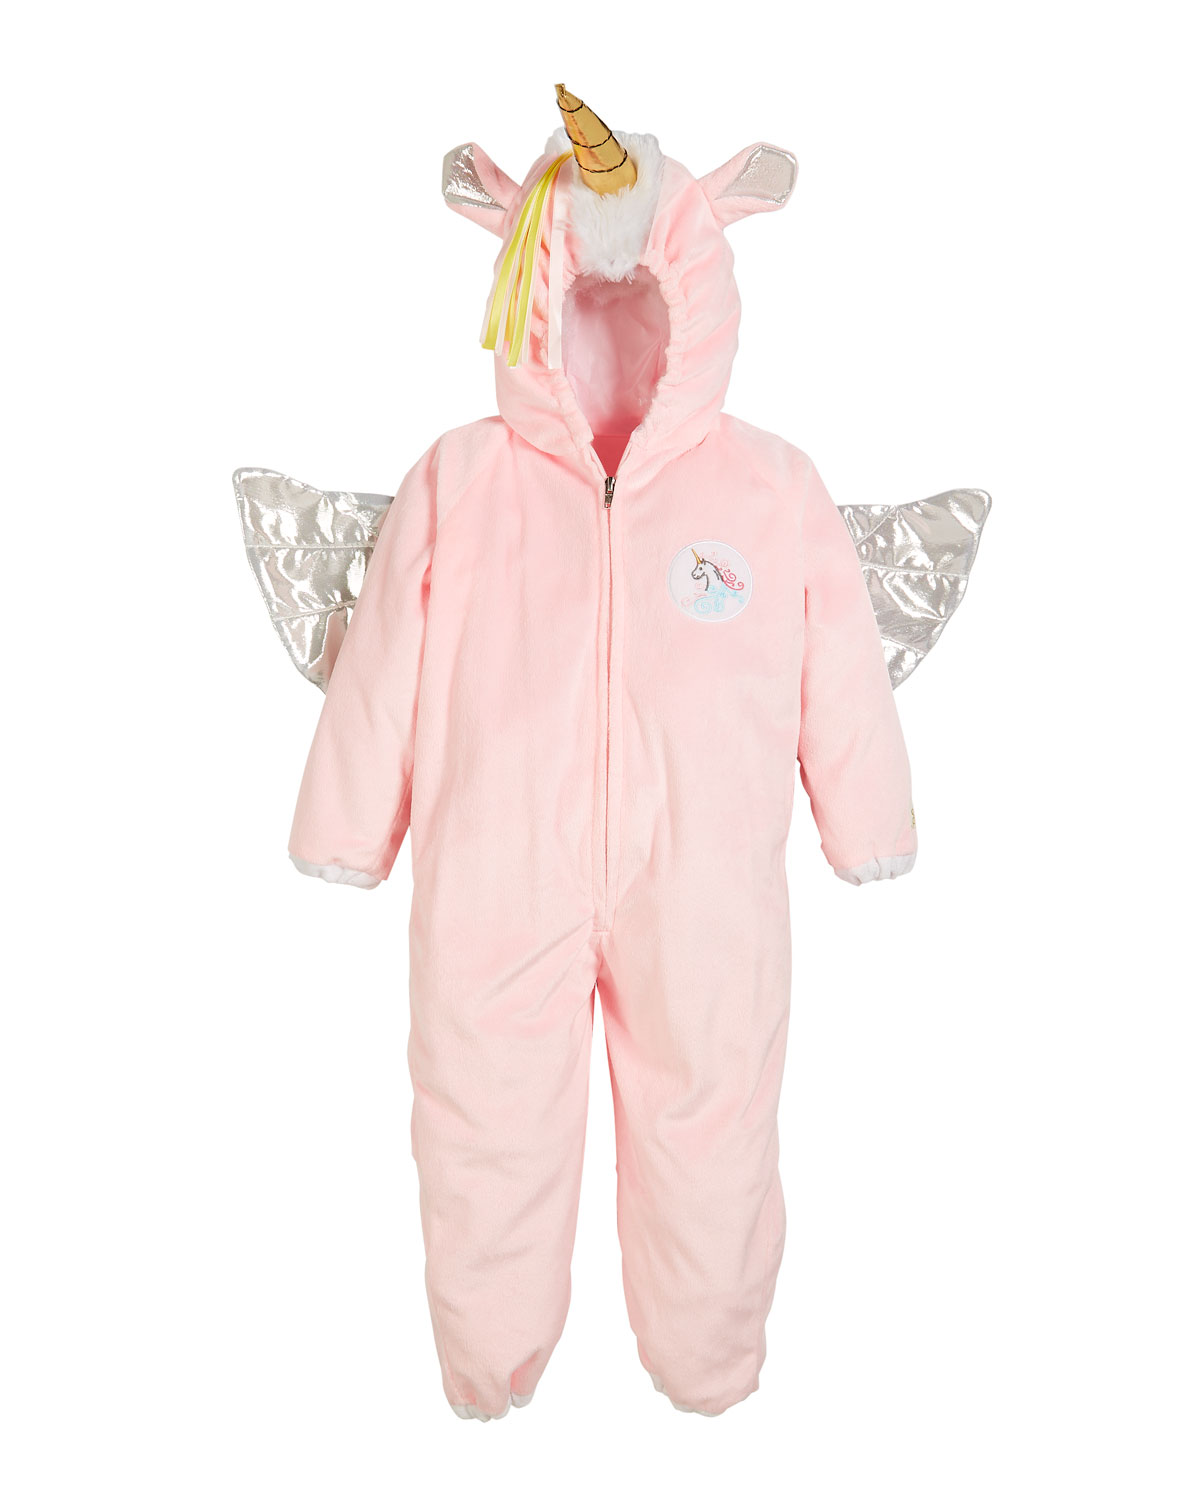 Kids Unicorn Jumpsuit Costume 56 Years